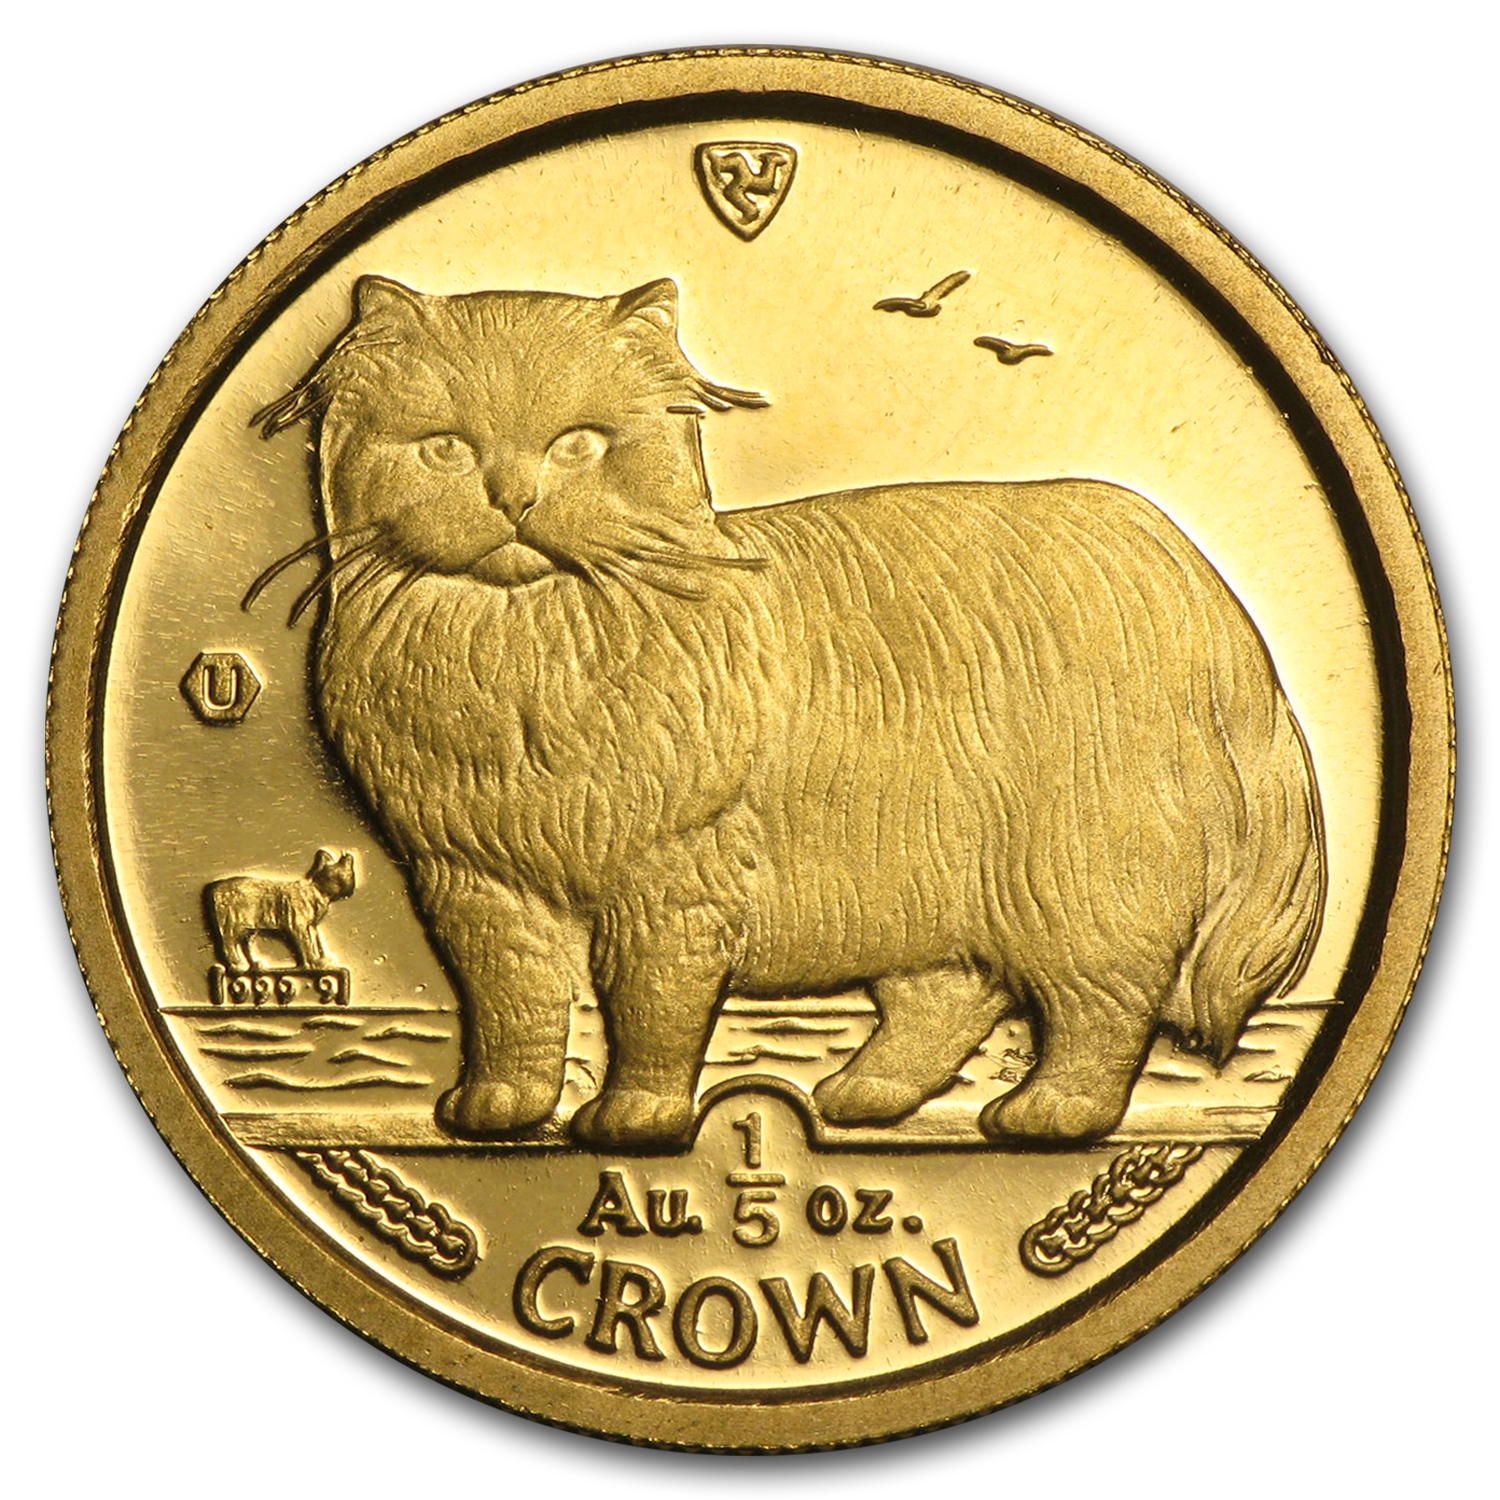 Isle of Man 1/5 Crown Gold Cats - Proof or Uncirculated